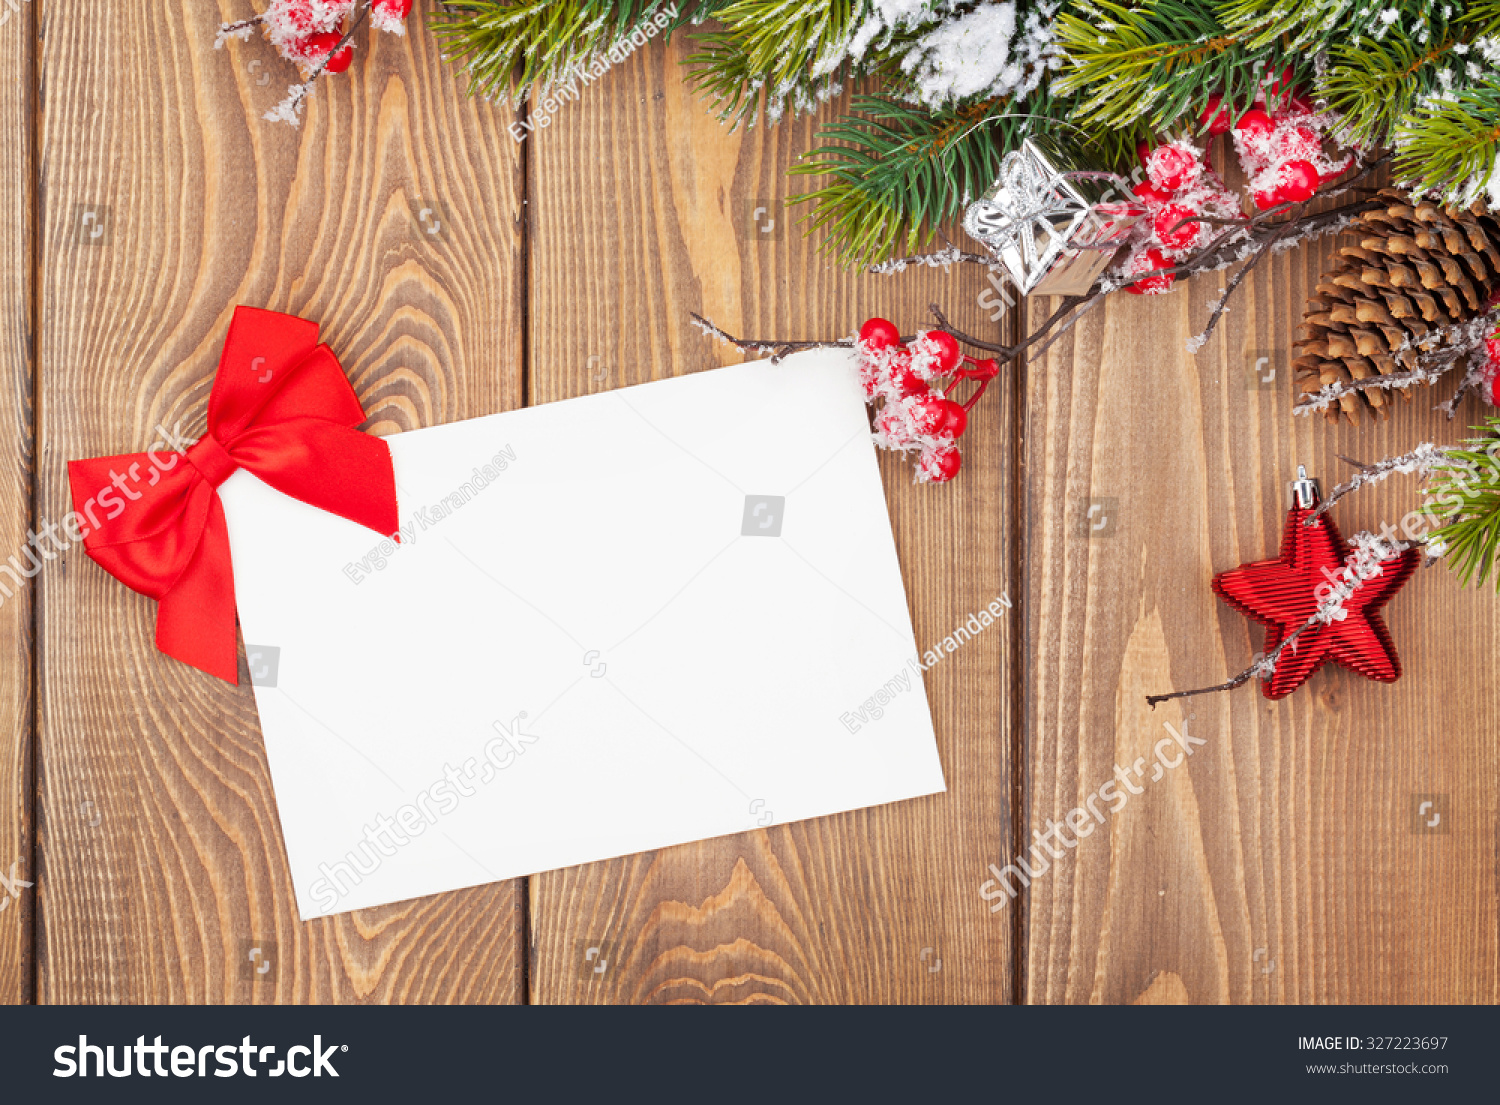 Christmas Tree Branch With Snow And Blank Greeting Card On Wooden